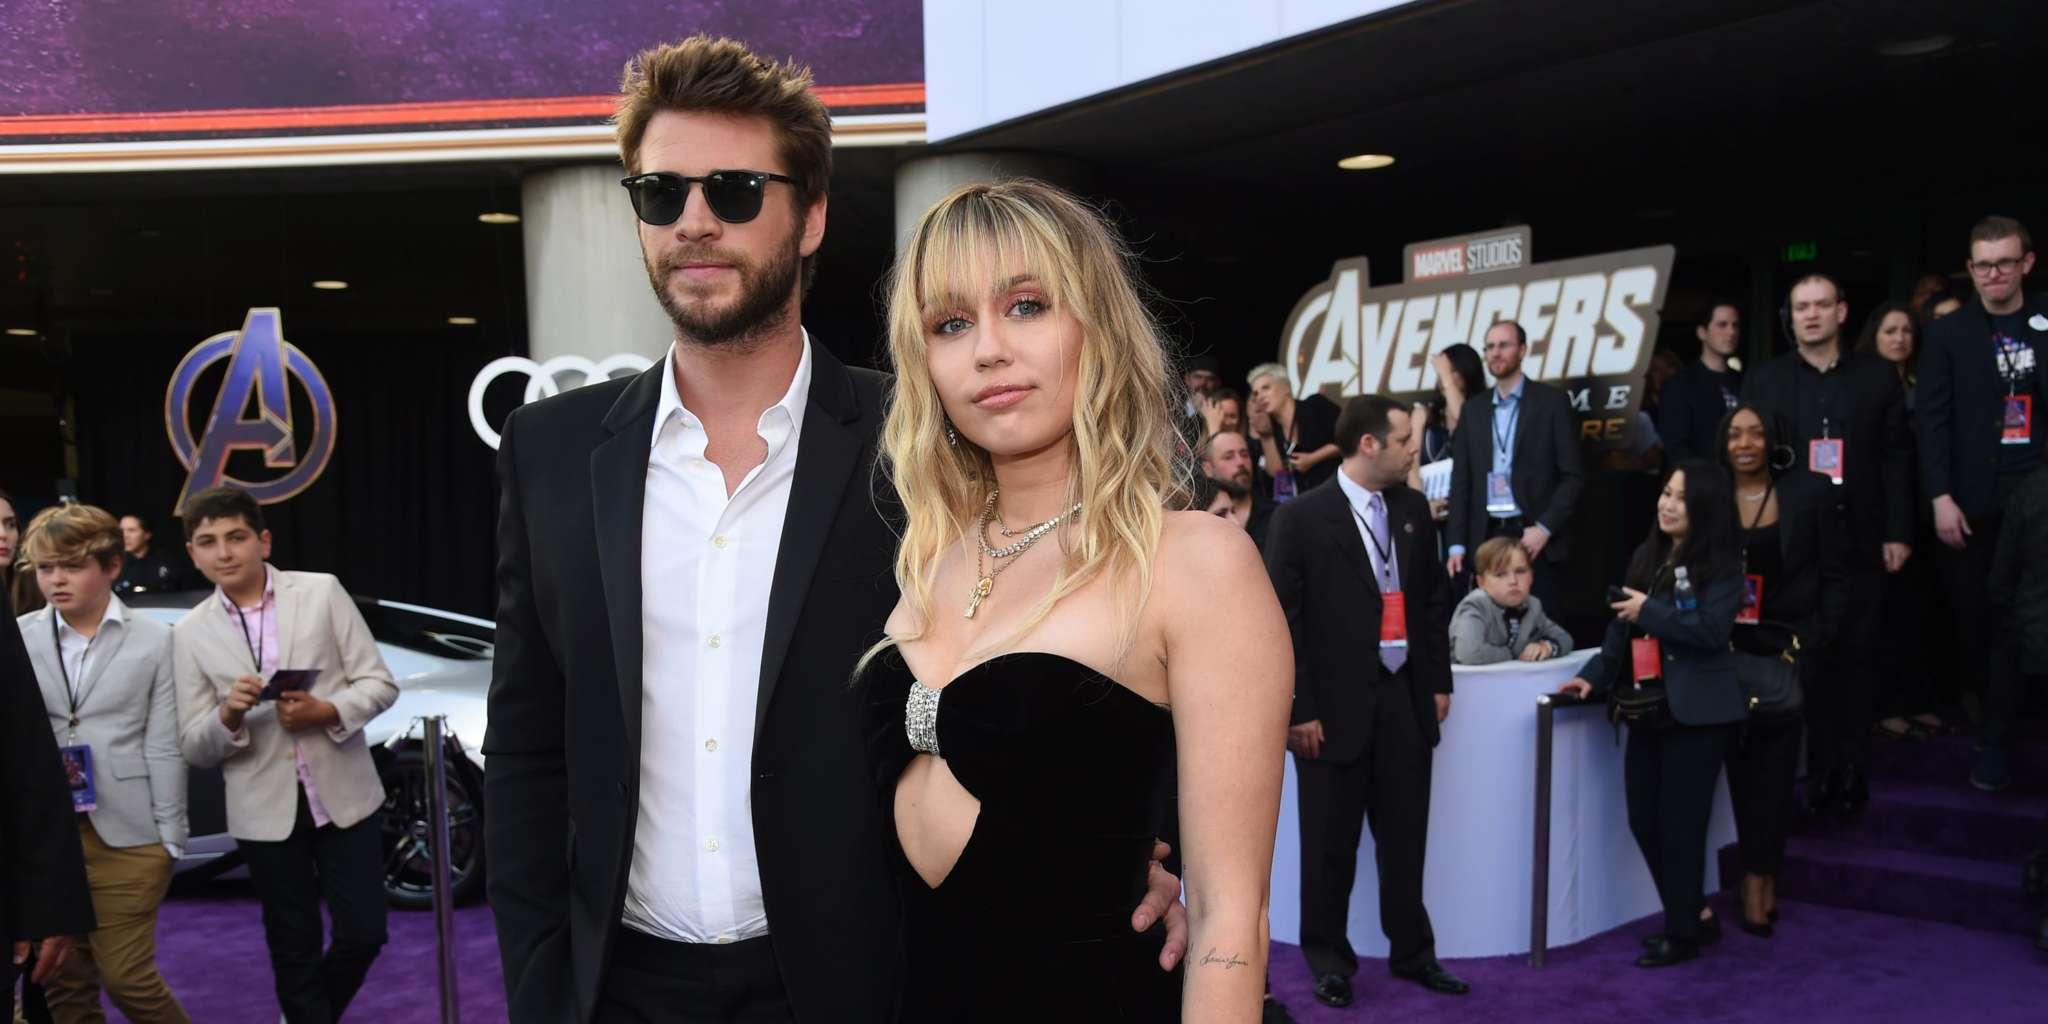 Wendy Williams Is On Miley Cyrus' Side Amid Criticism For Moving On From Liam Hemsworth So Fast - 'Do You And Have Fun!'